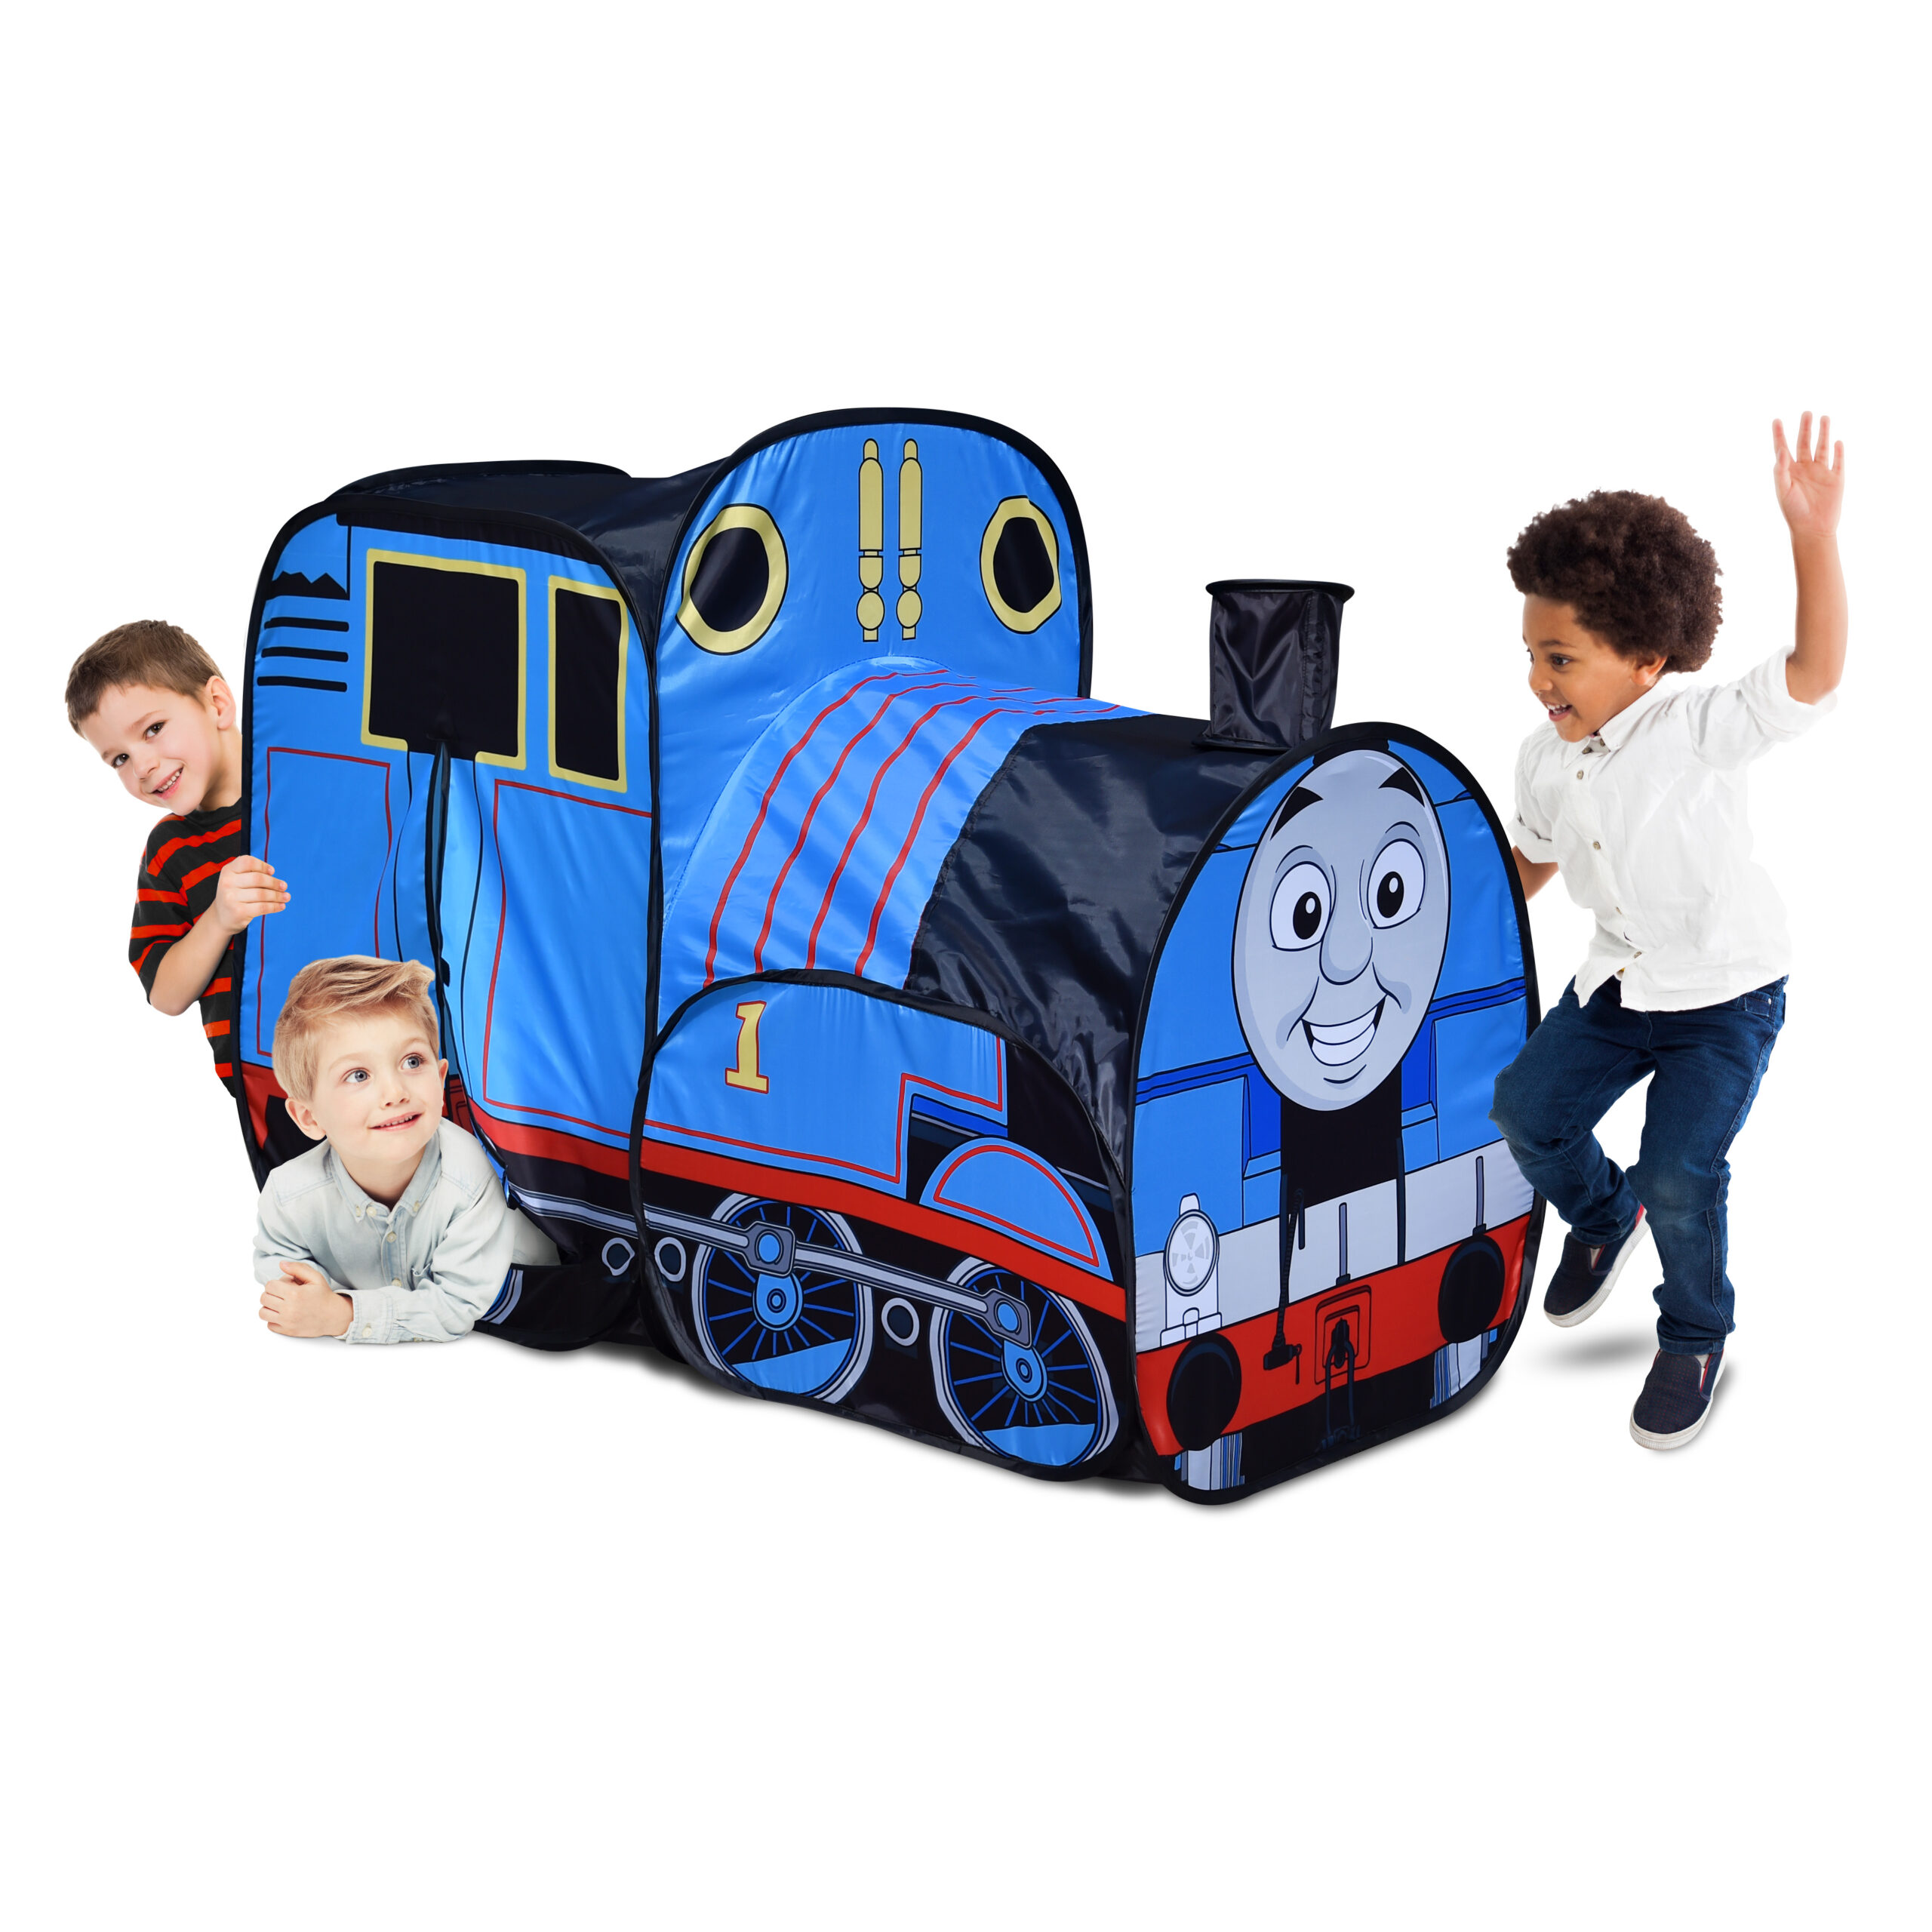 Thomas & Friends Thomas The Train Pop up Tent – Durable Material Allows for Inside or Outside Use for Kids Ages 3+ (Walmart)